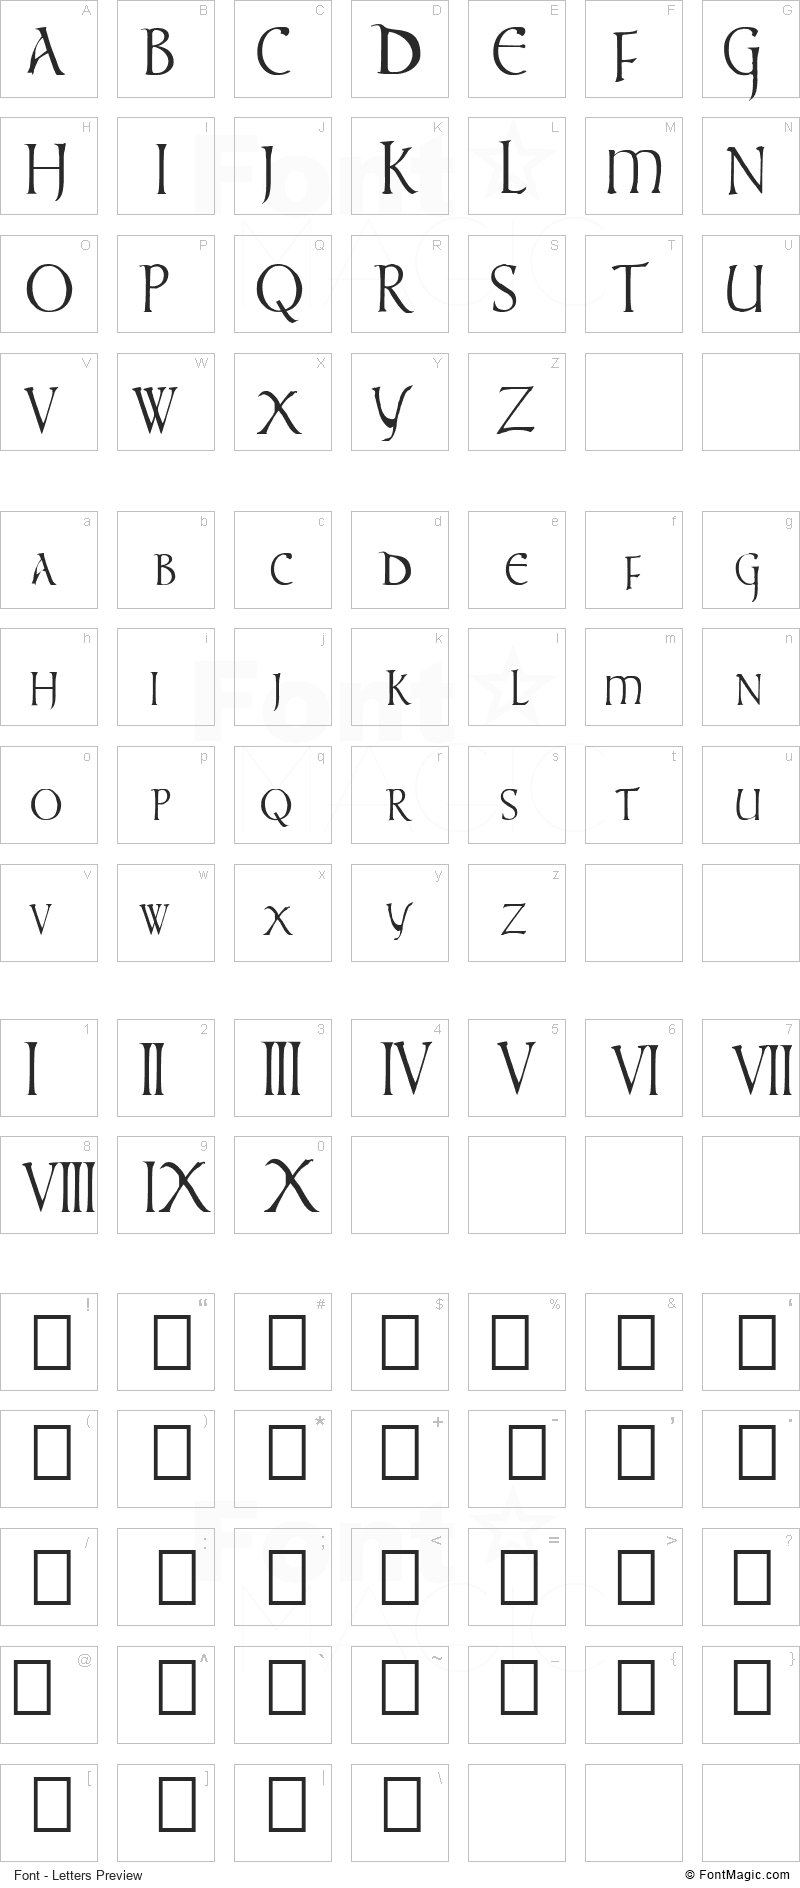 Times New Vespasian Font - All Latters Preview Chart